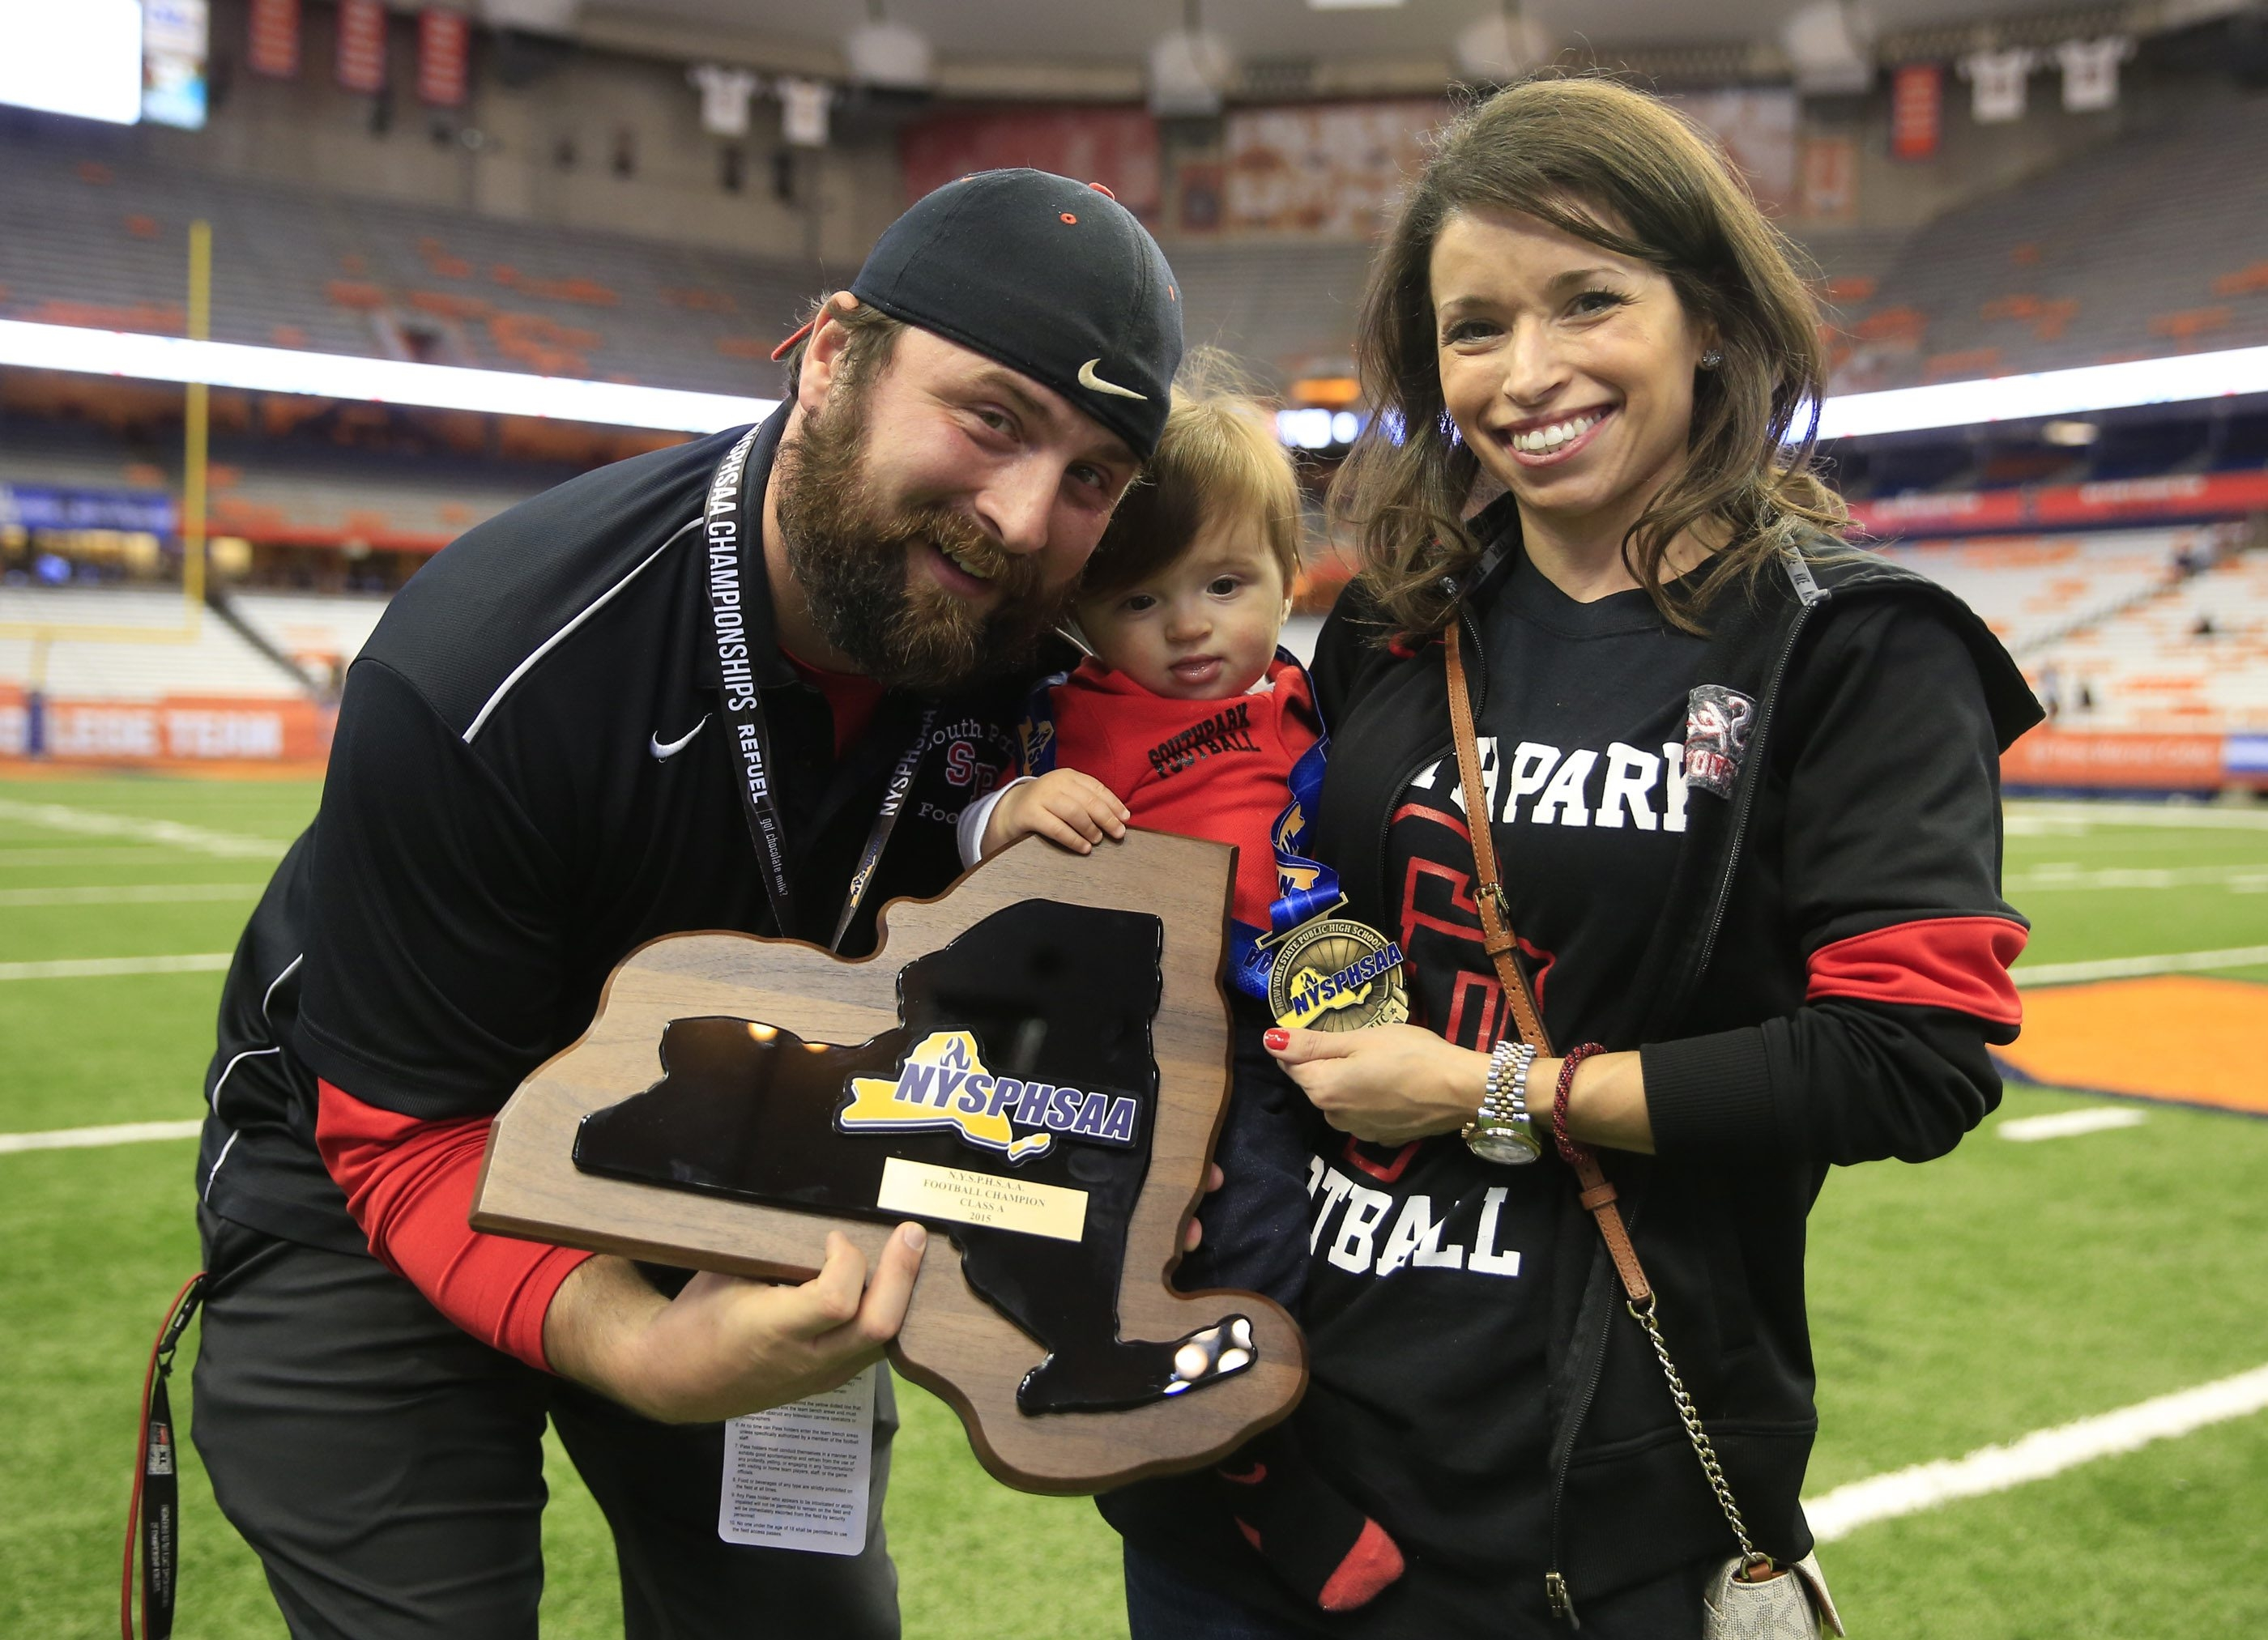 South Park coach Tim Delaney celebrates with his wife and son after defeating Our Lady of Lourdes for the New York State Class A championship  at the Carrier Dome.